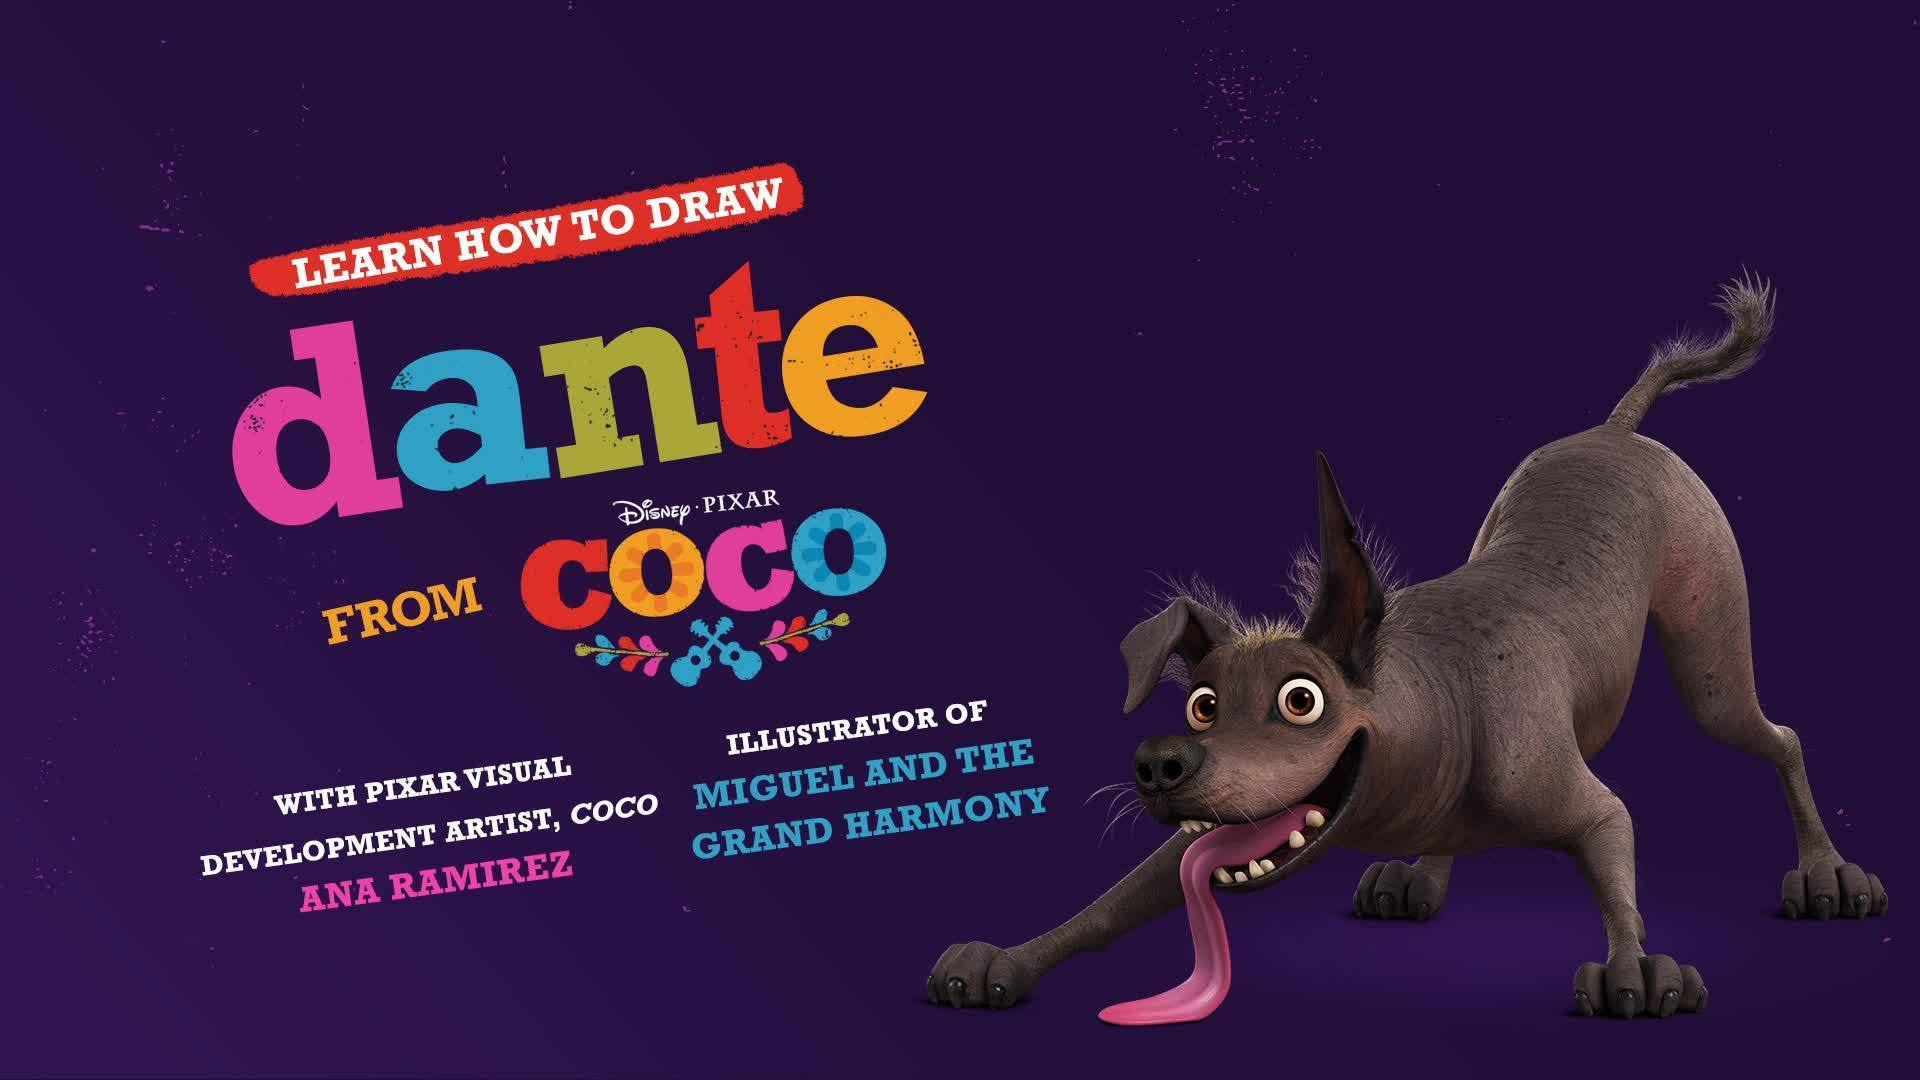 How To Draw Dante from Coco | Disney